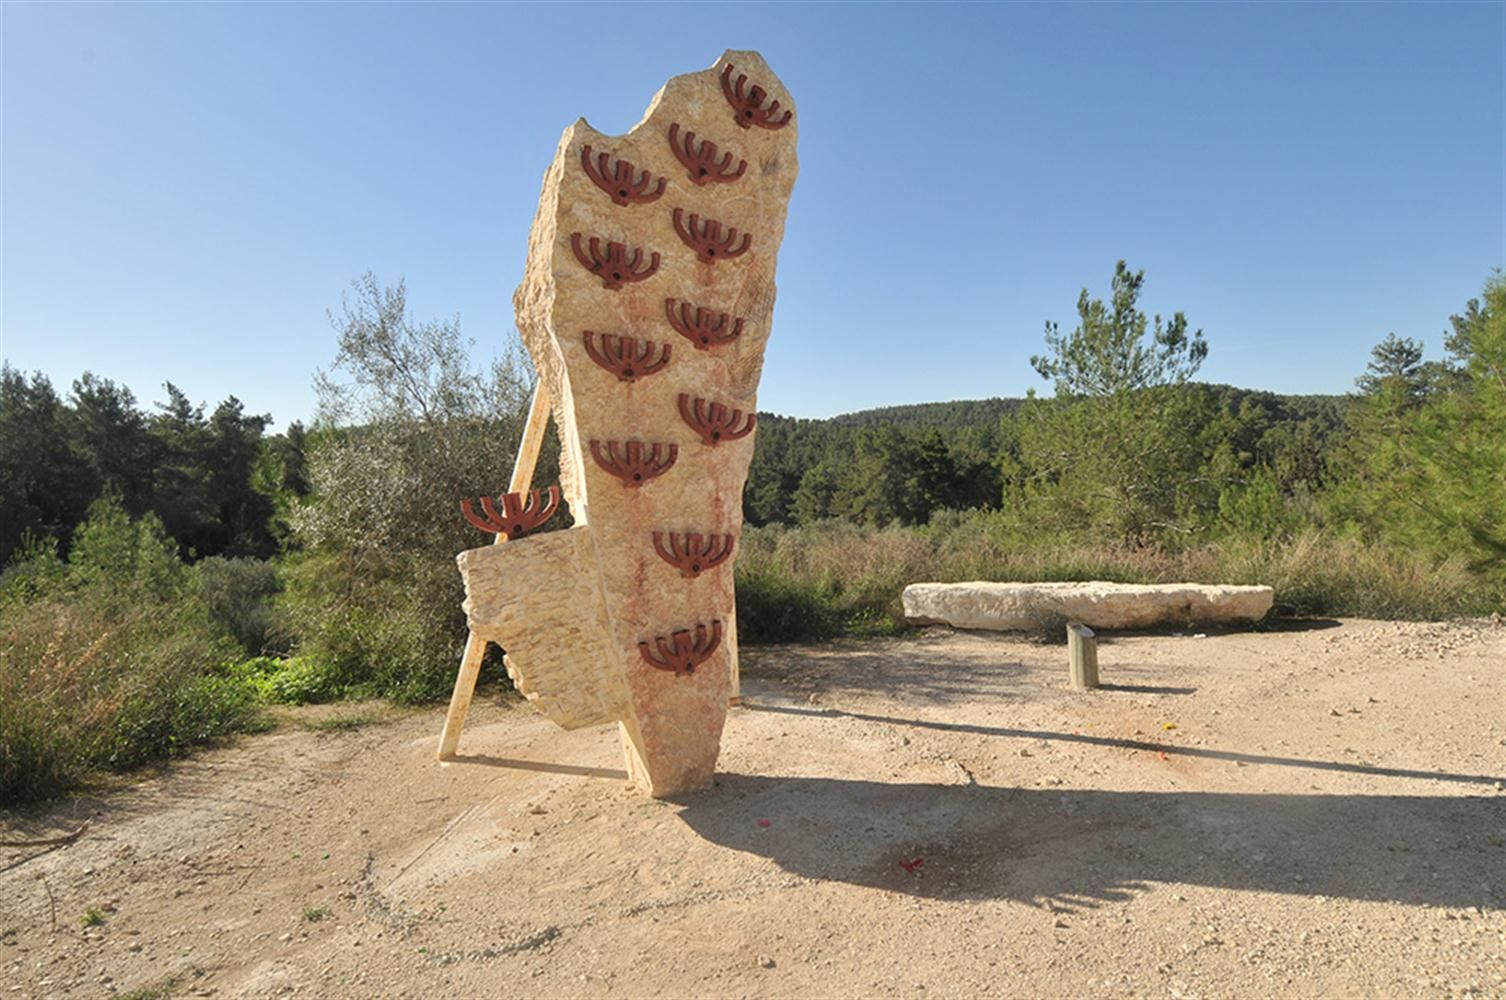 One of the works found on the Sculpture Road. Photo courtesy of KKL-JNF